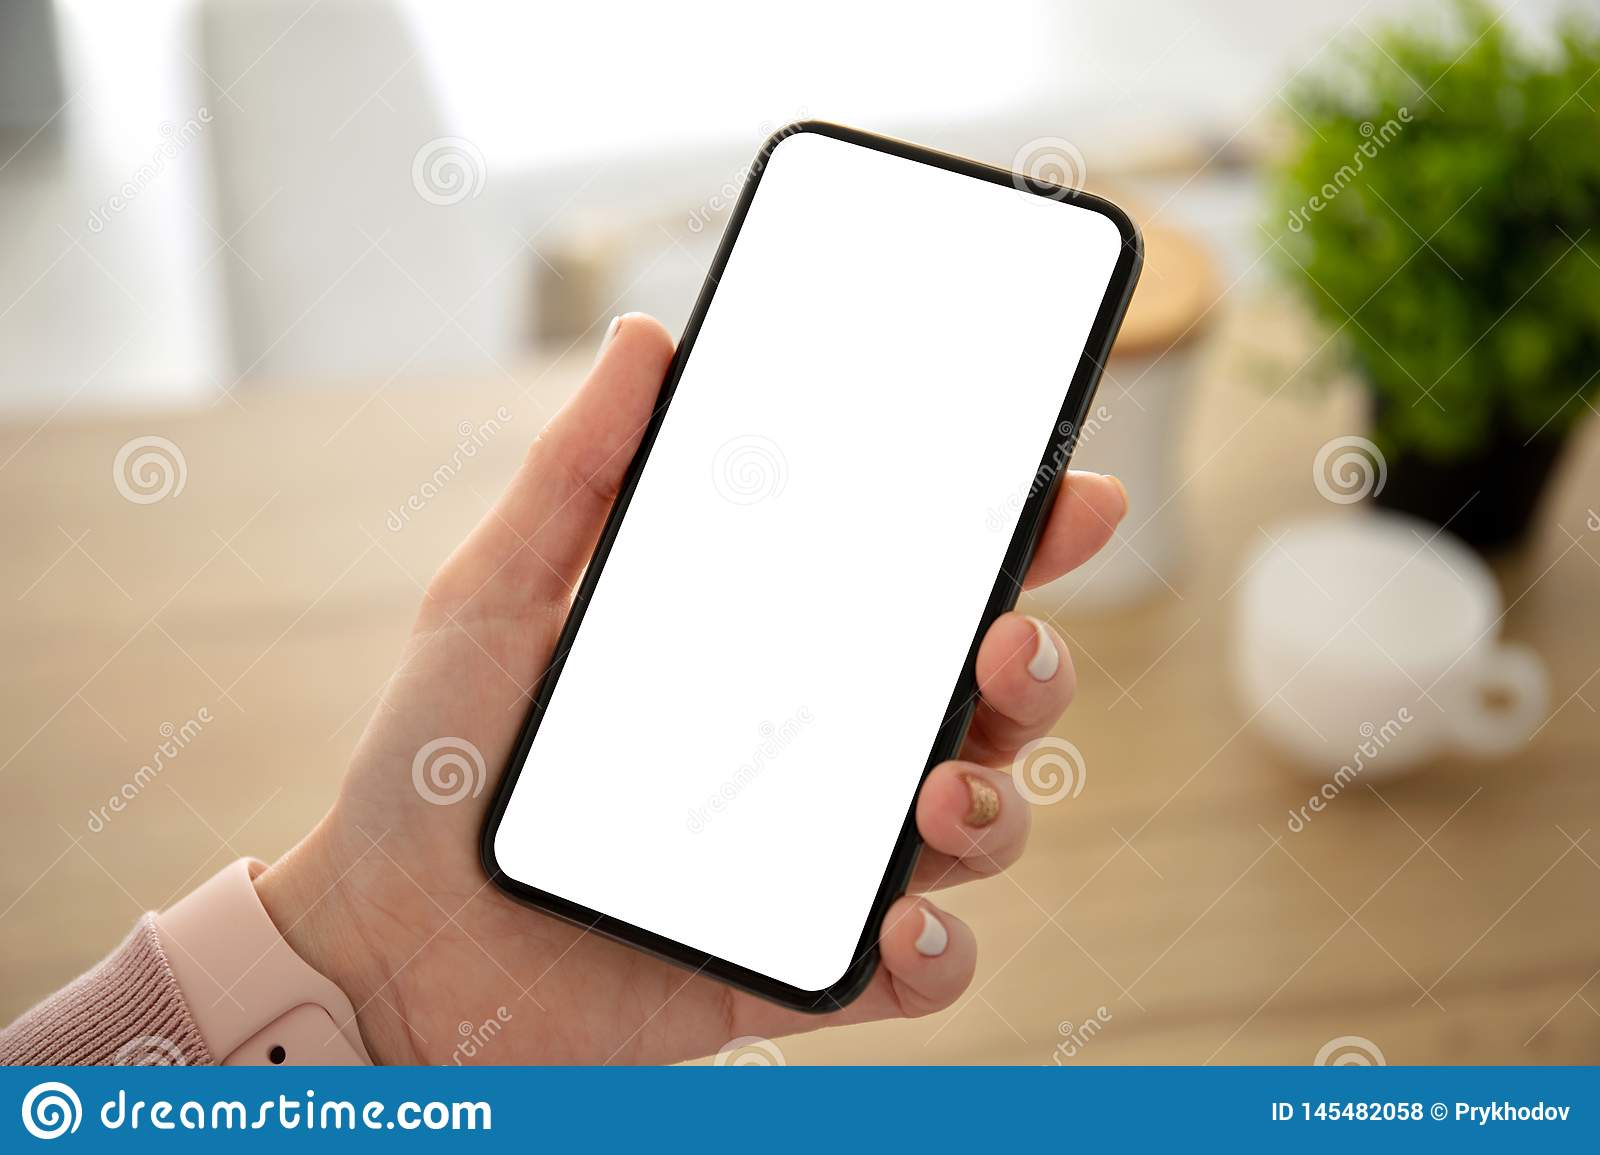 Female hands holding phone with isolated screen in the room